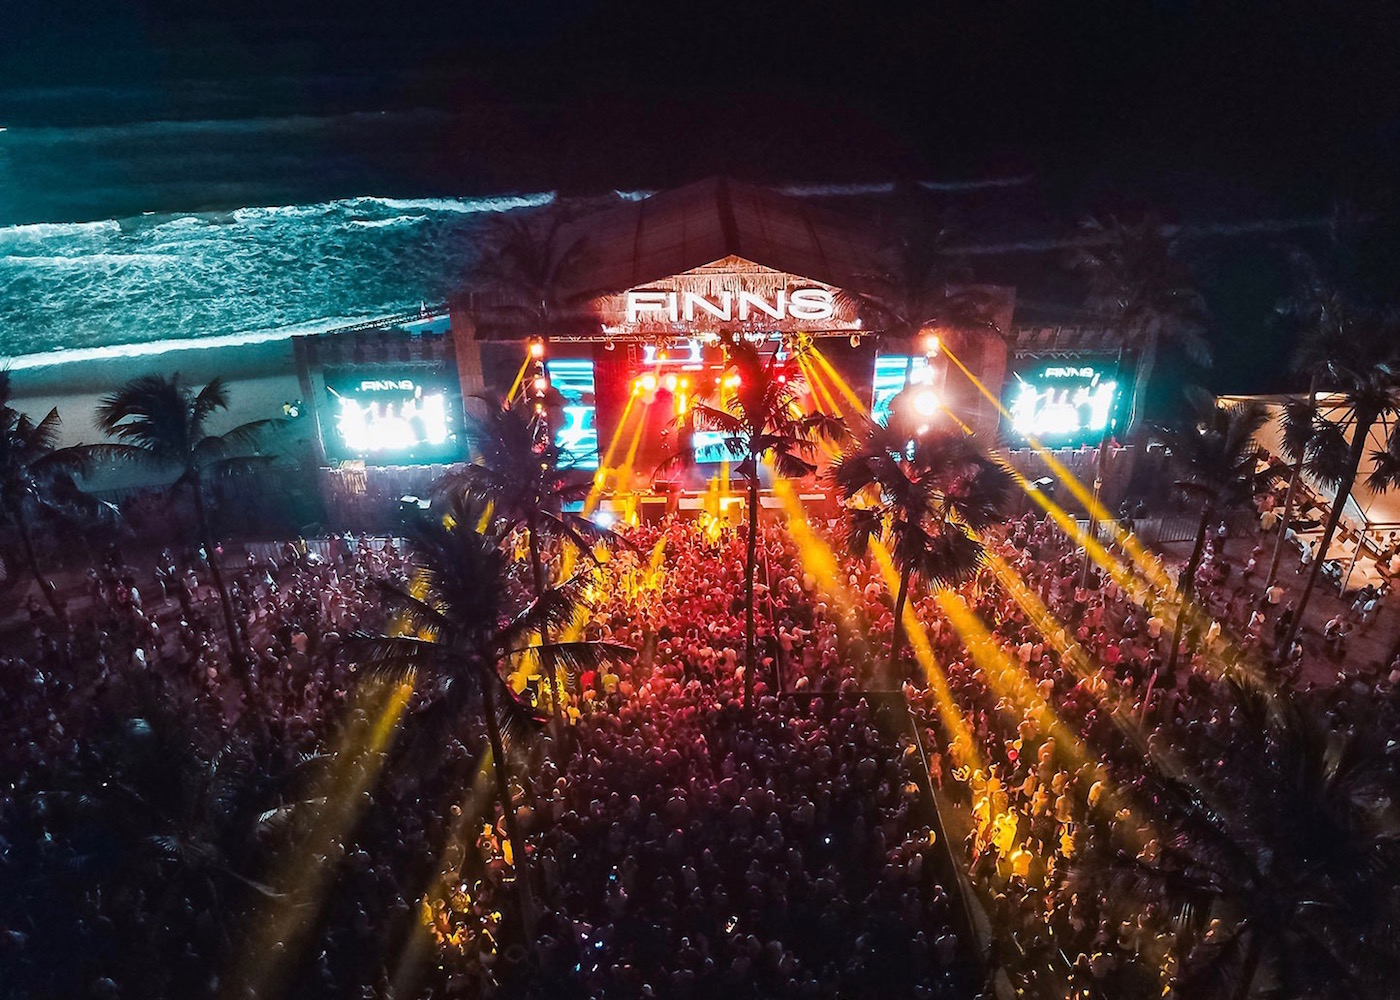 The Biggest New Year's Eve Party in Bali at Finns Beach Club